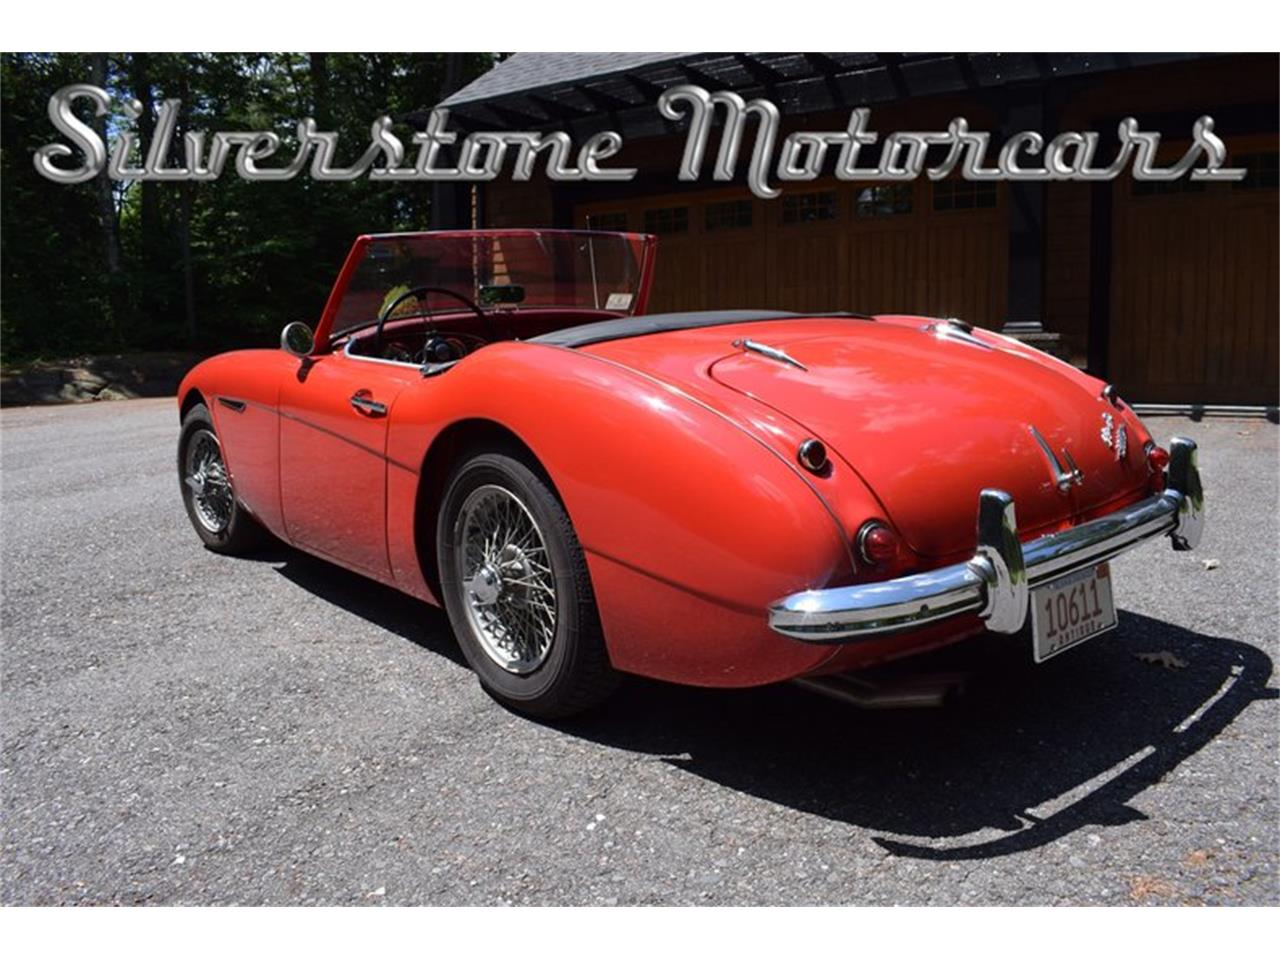 Large Picture of '61 Austin-Healey 3000 - $68,500.00 Offered by Silverstone Motorcars - NP0V